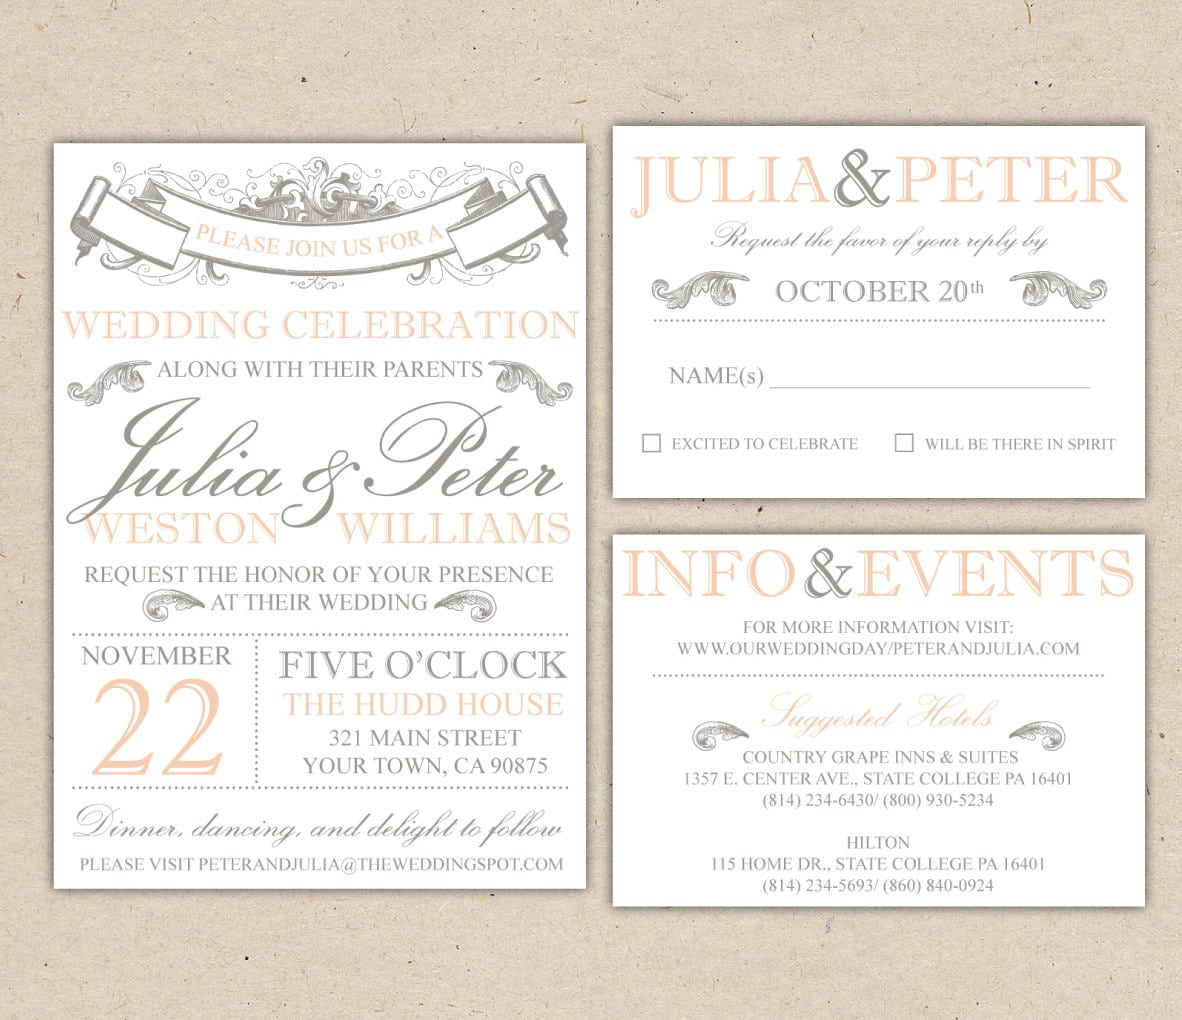 Invitations Templates Free Download format of invoice in word what – Birthday Invitation Templates Free Word